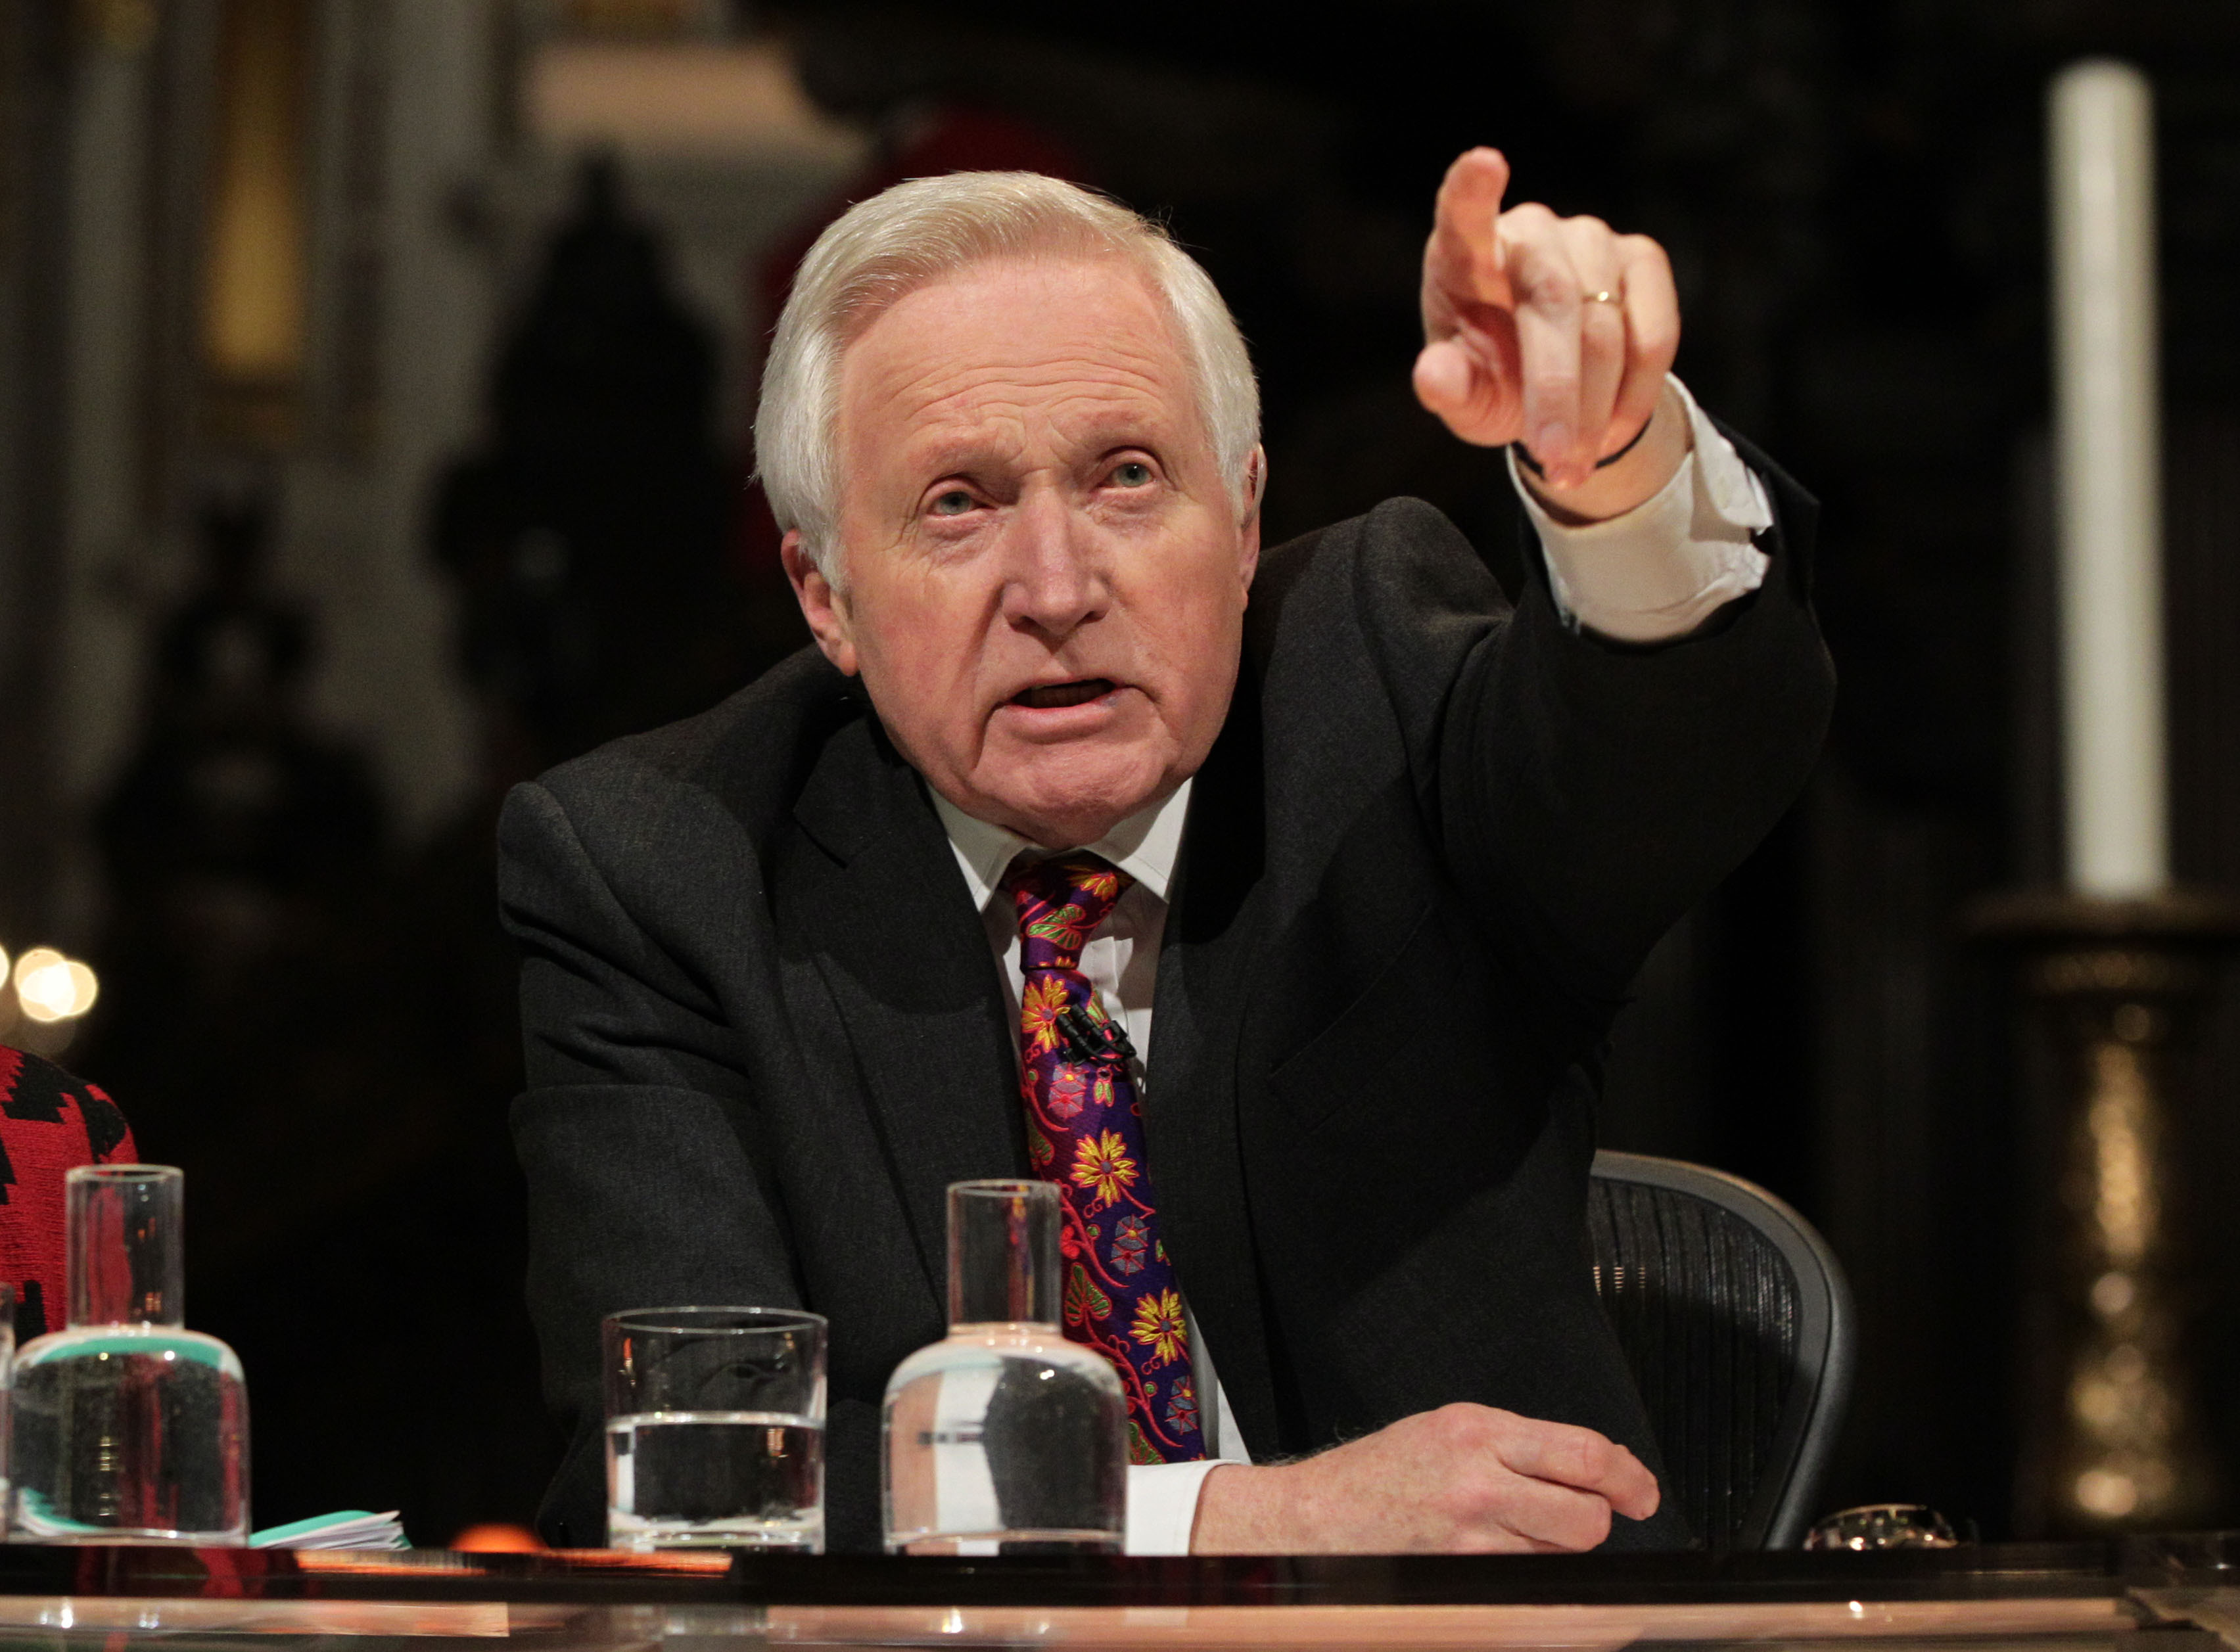 David Dimbleby to host Margaret Thatcher funeral coverage and Question Time special